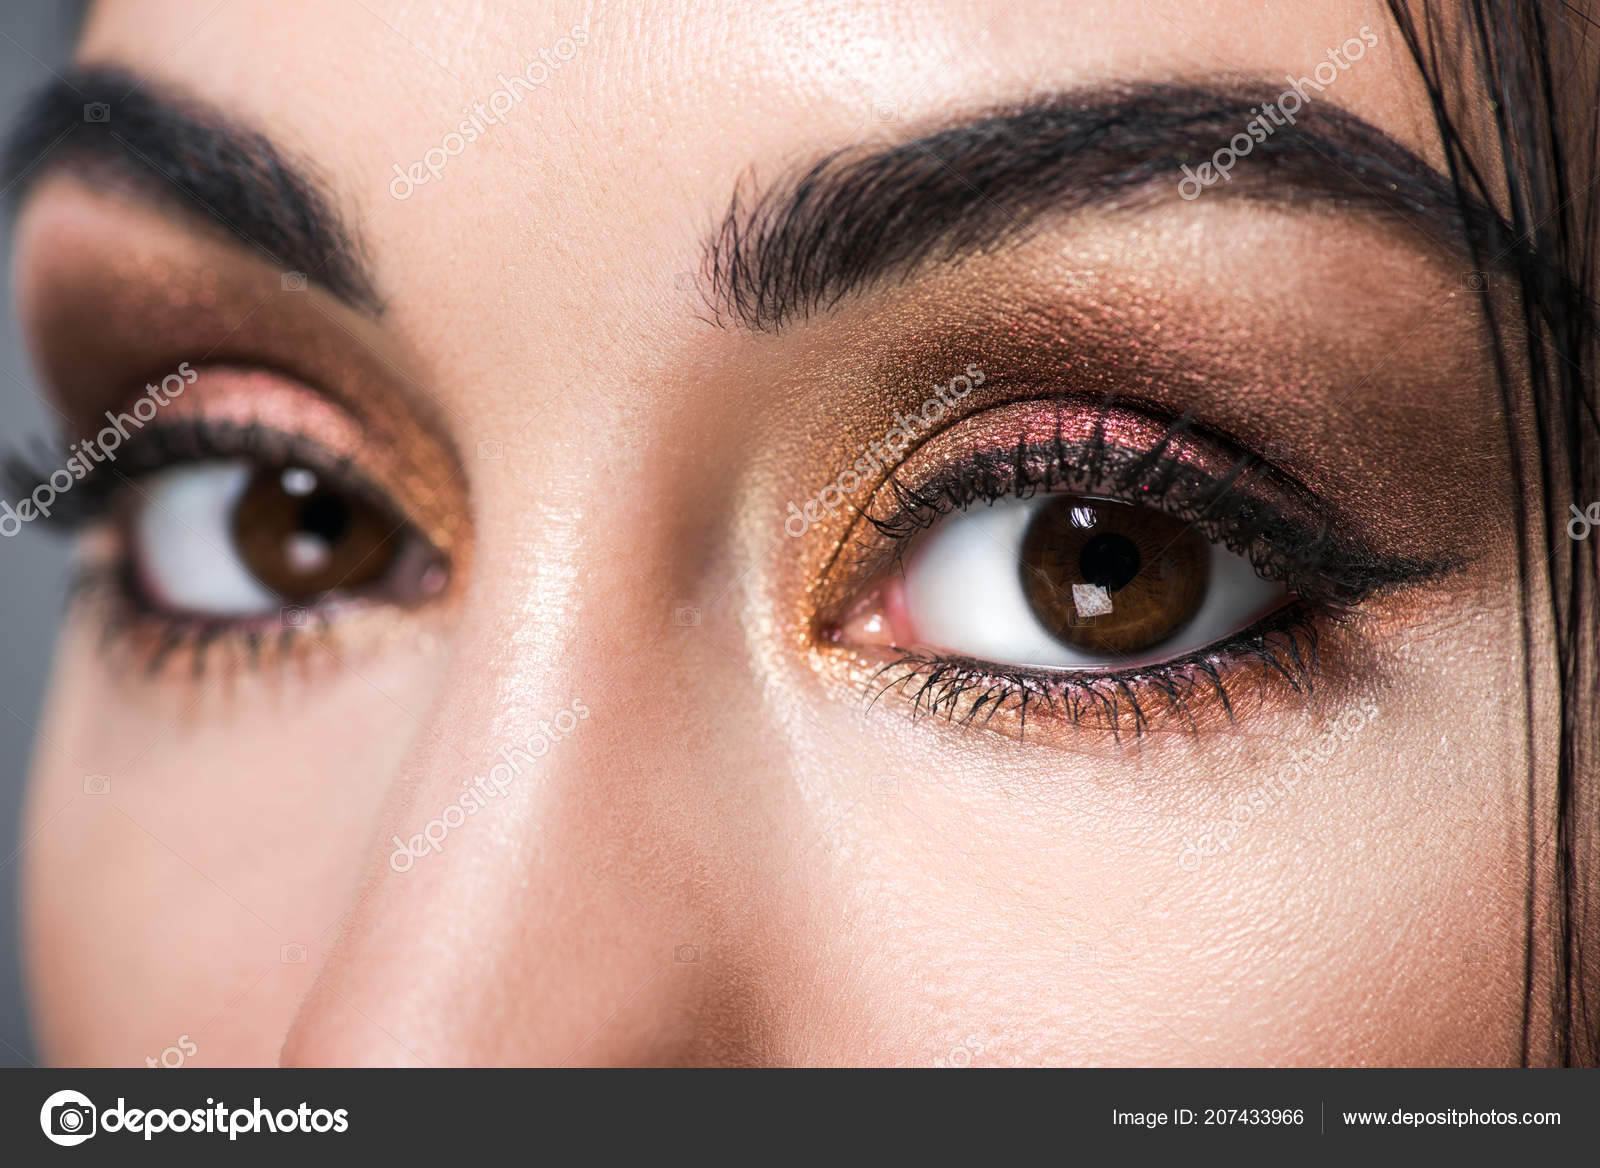 Close Beautiful Female Eyes Makeup Stock Photo Allaserebrina